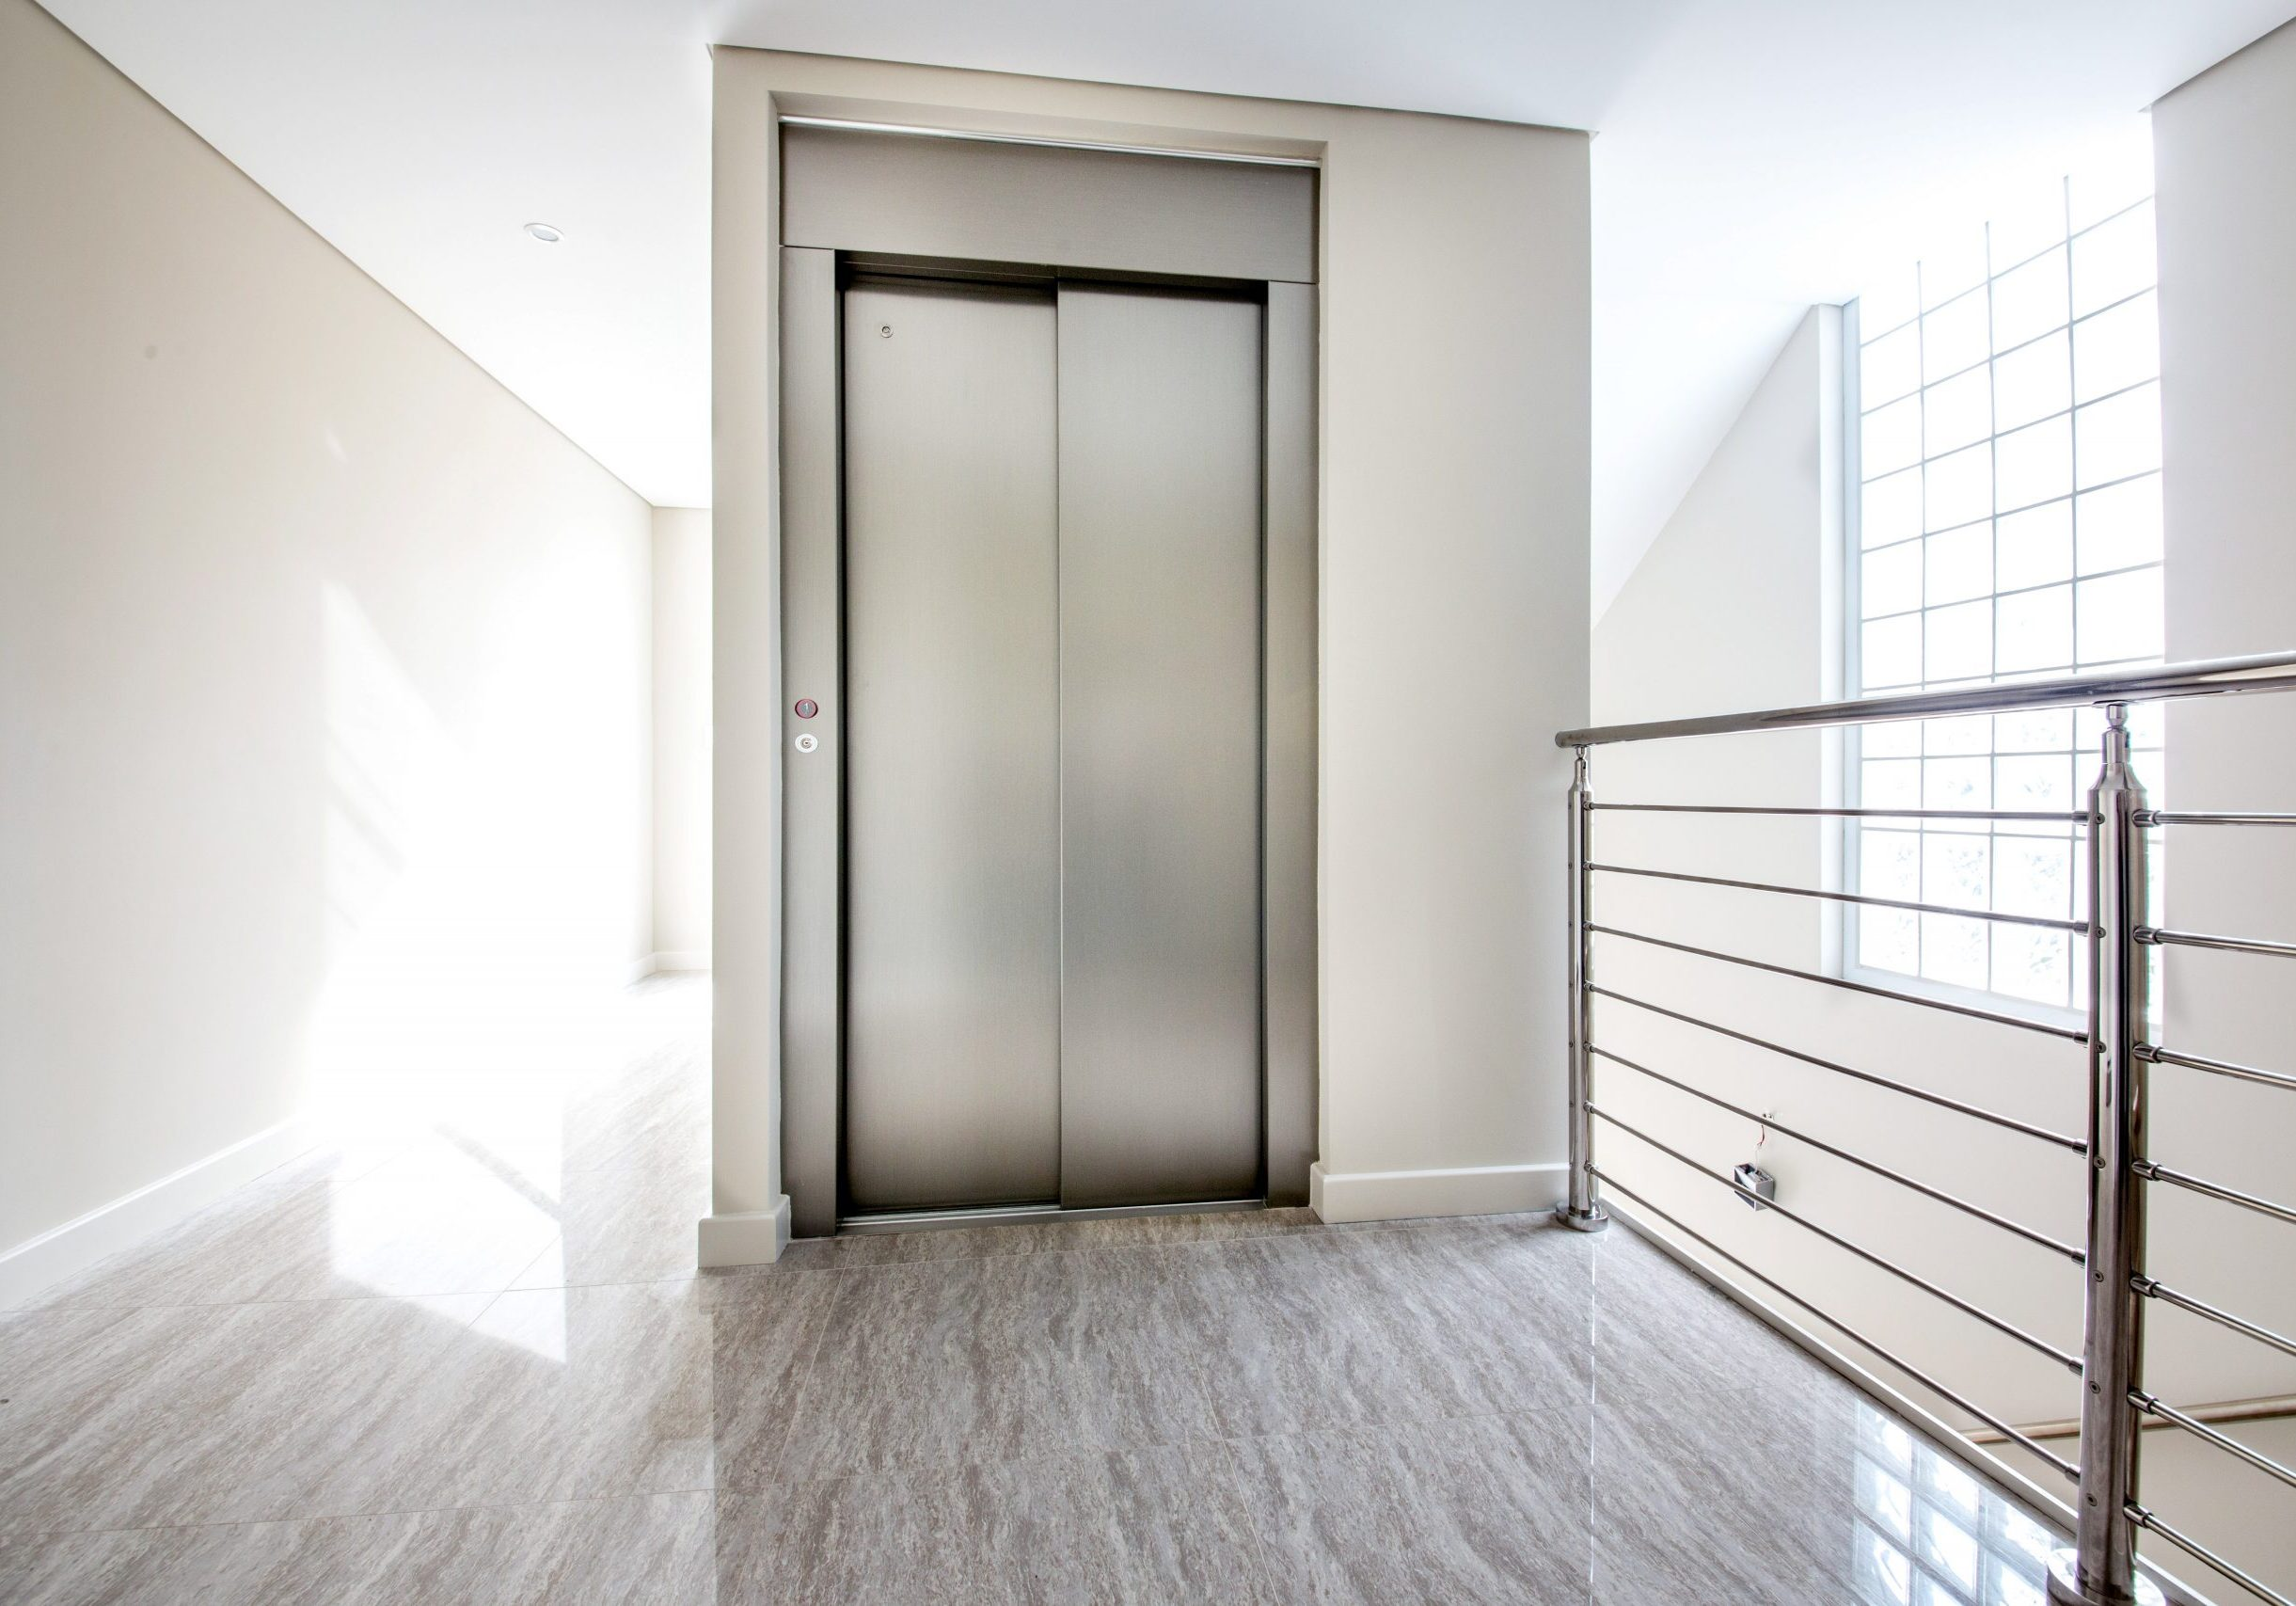 Elevator in a new build